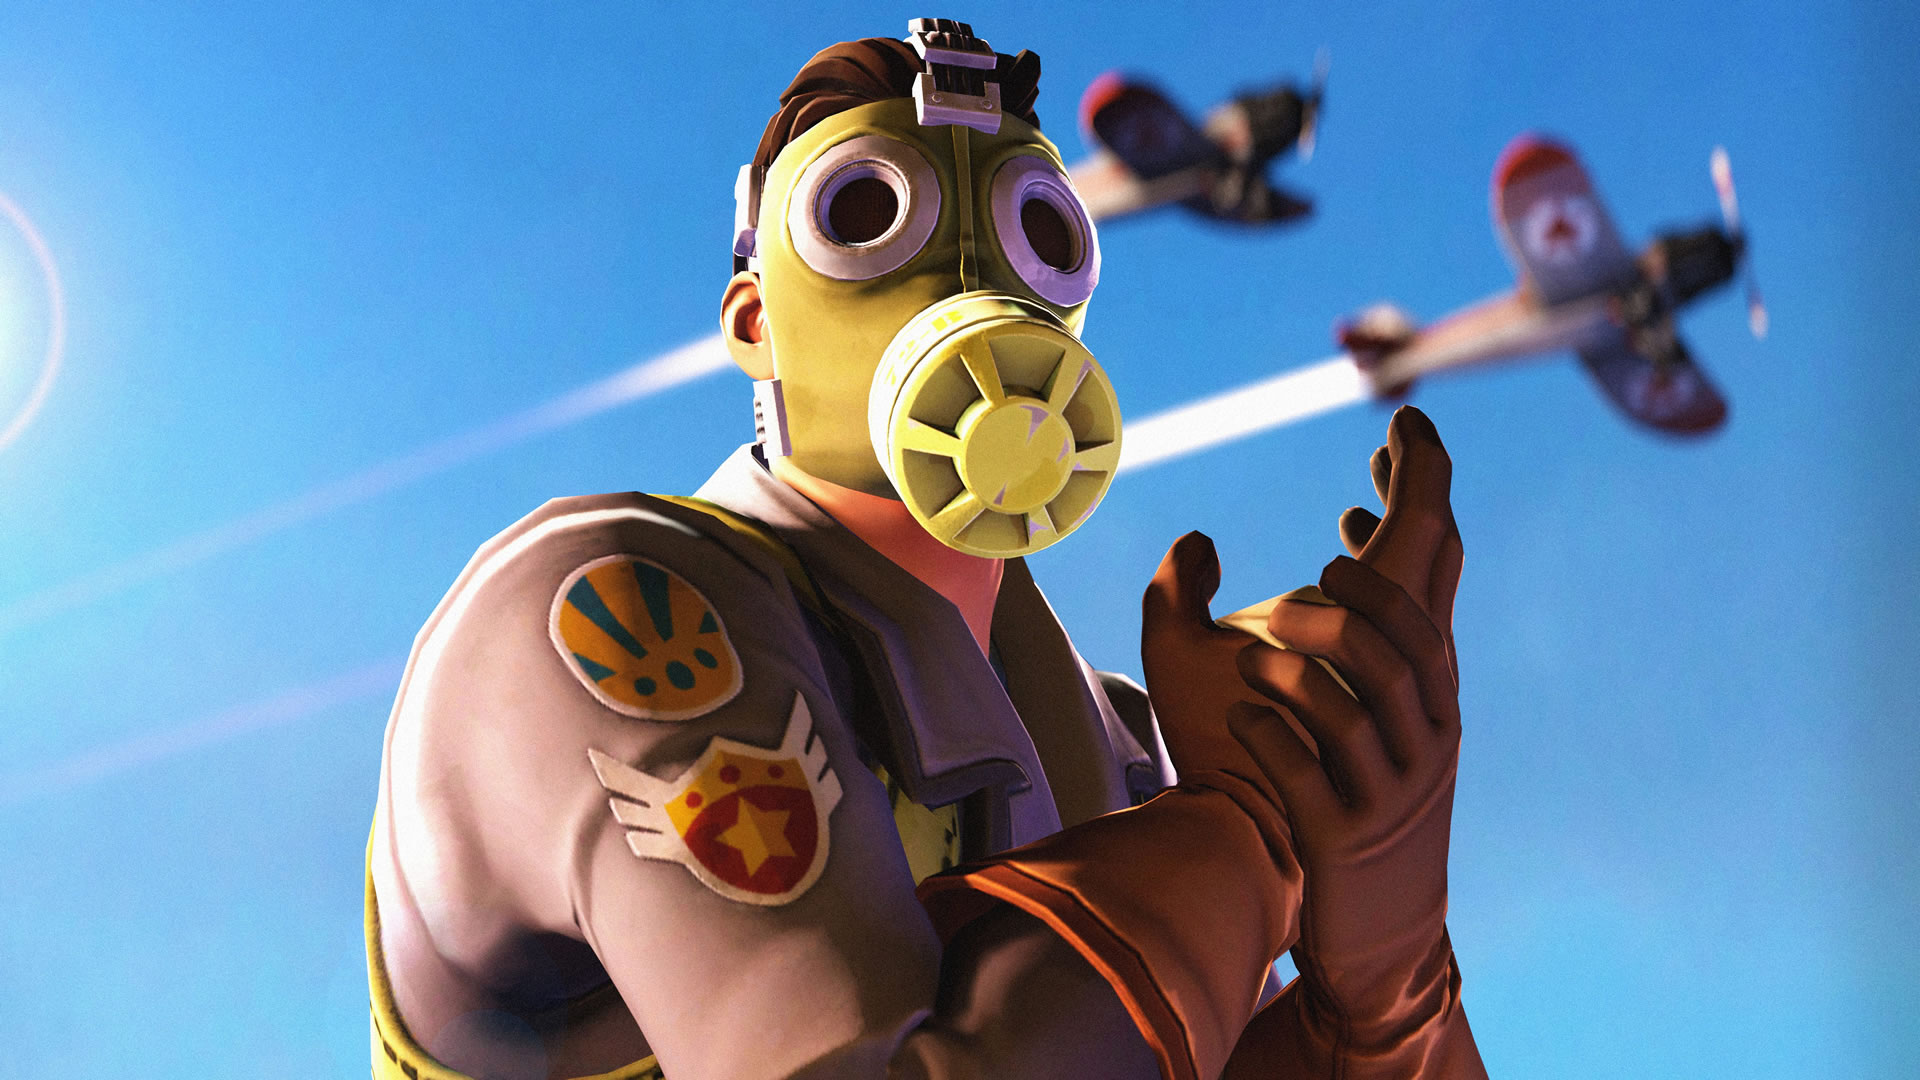 download wallpaper: Fortnite – Sky Stalker wallpaper